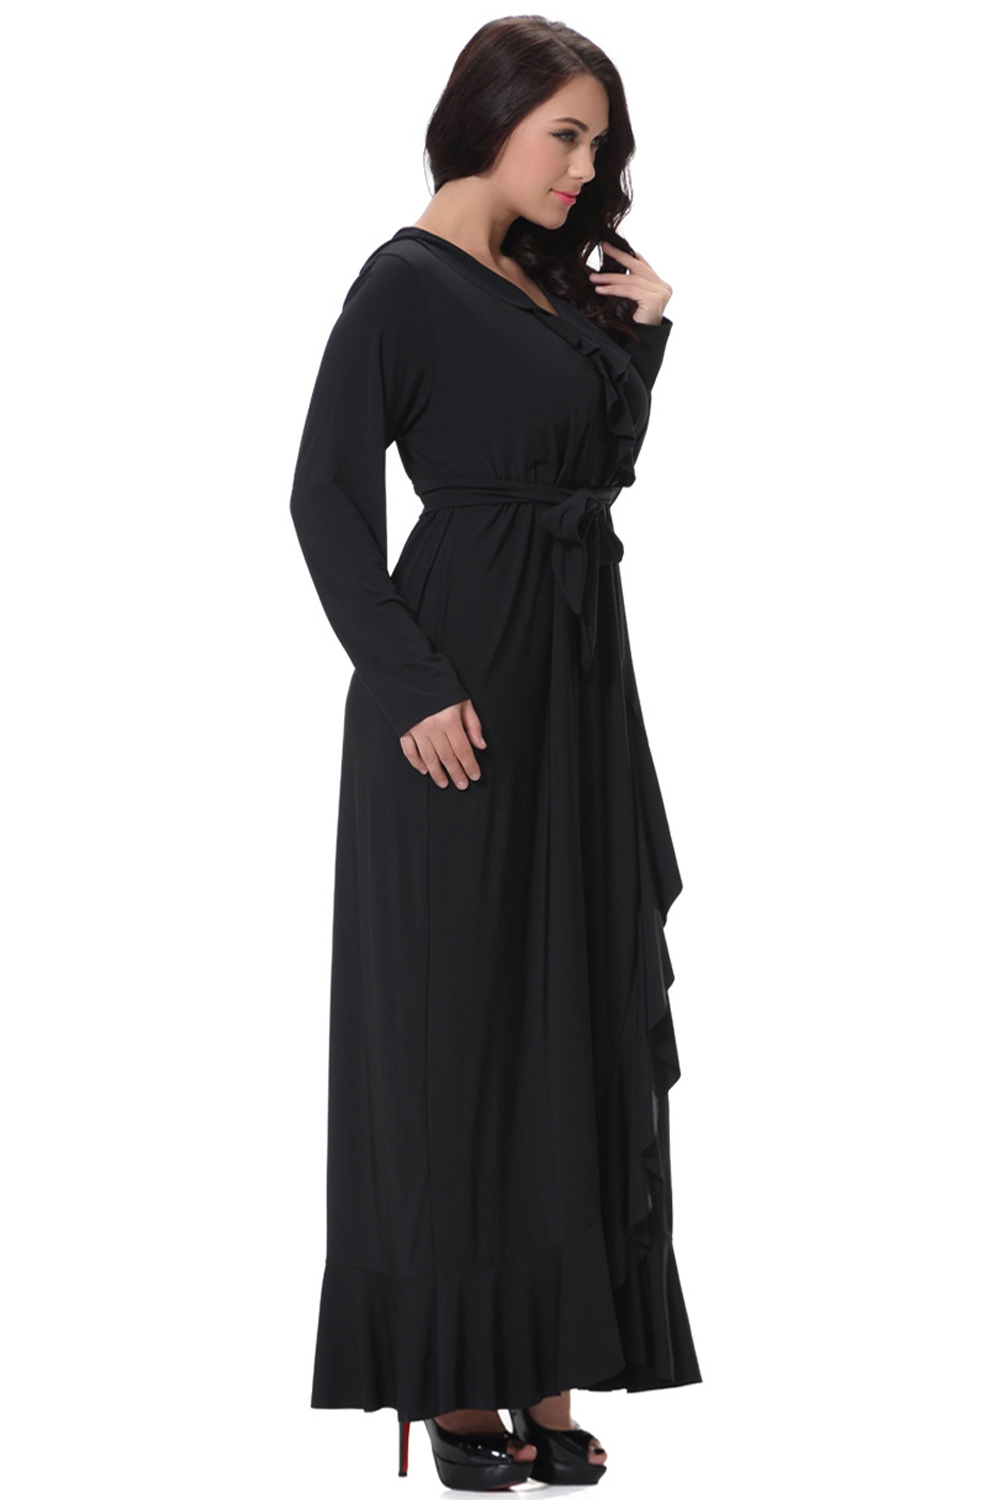 UNOMATCH WOMEN PLUS SIZE V-NECK LONG SLIT GOWN MAXI DRESS ...